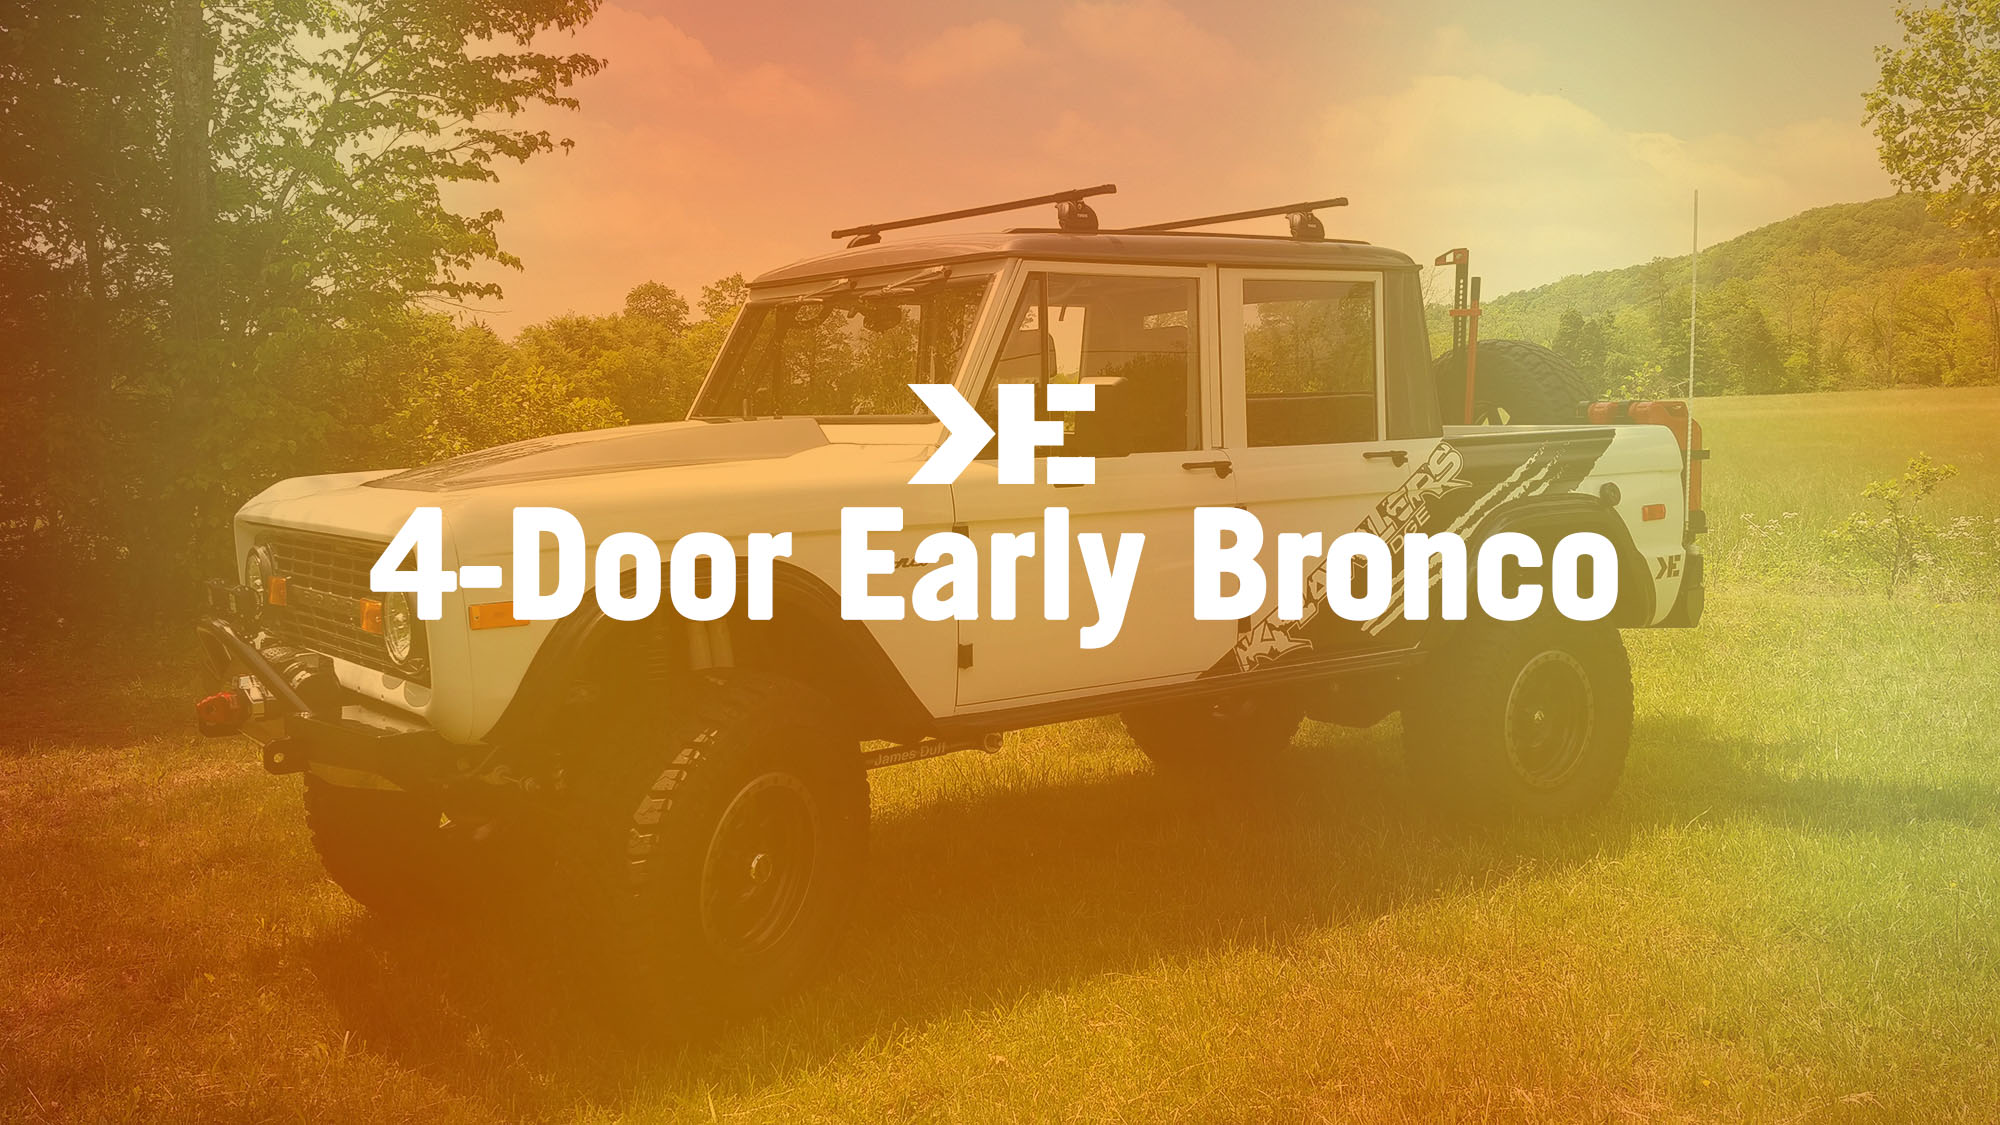 4 door Early Bronco by Krawlers Edge